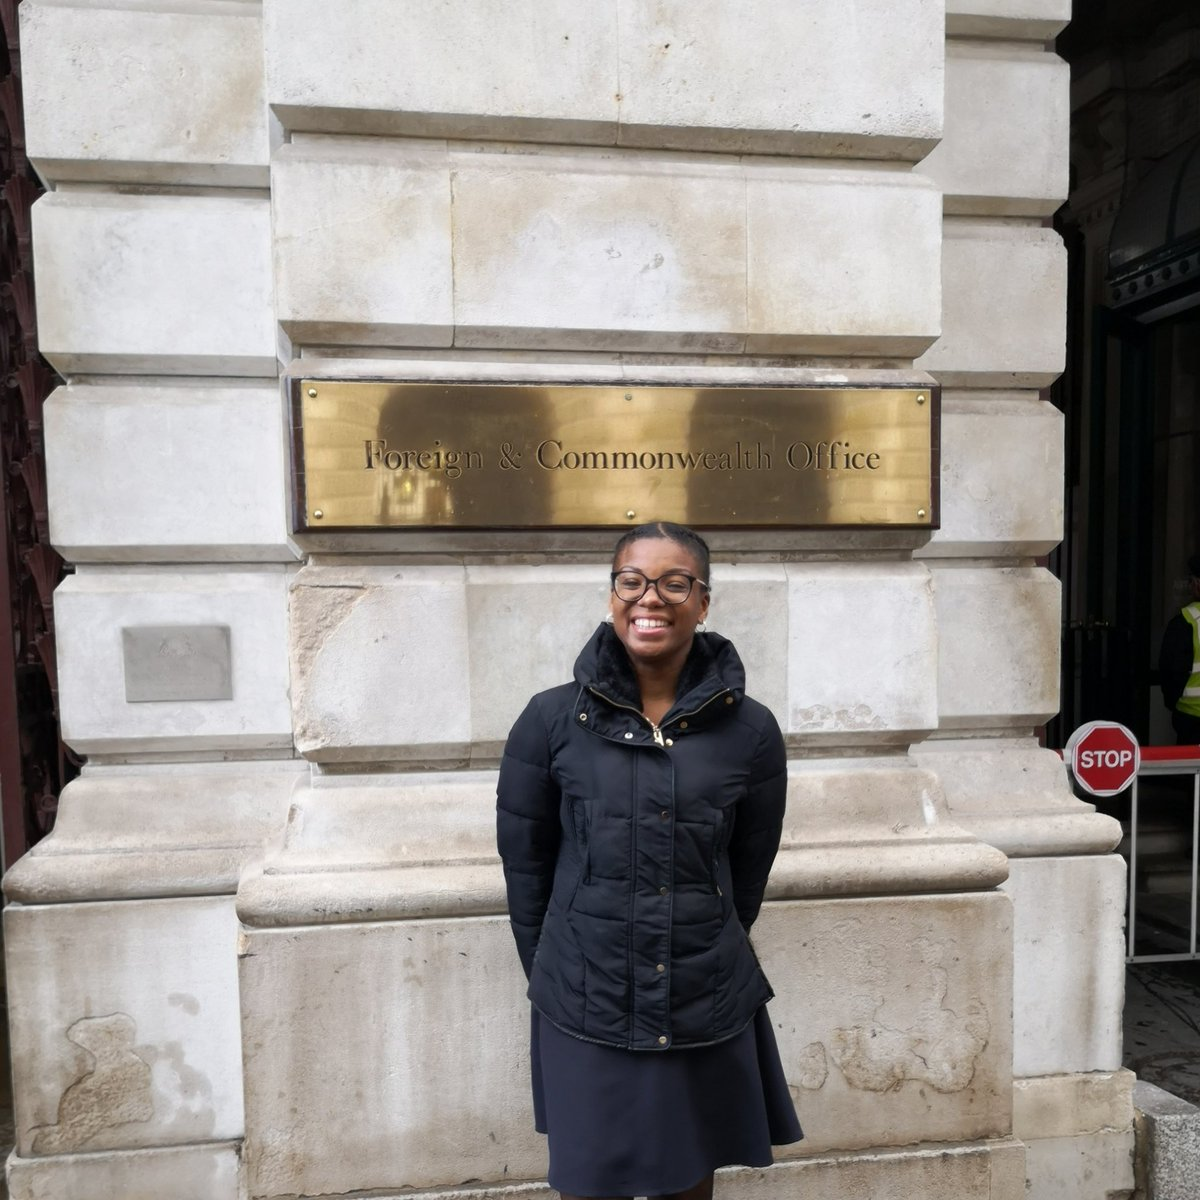 Celebrating #WOF2018 Week of Women with a great afternoon at the Foreign &amp; Commonwealth Office in fantastic @womenoffuture company getting up to speed on the latest about #GenderEquality at a local and international level.<br>http://pic.twitter.com/ZAK0IlDQov